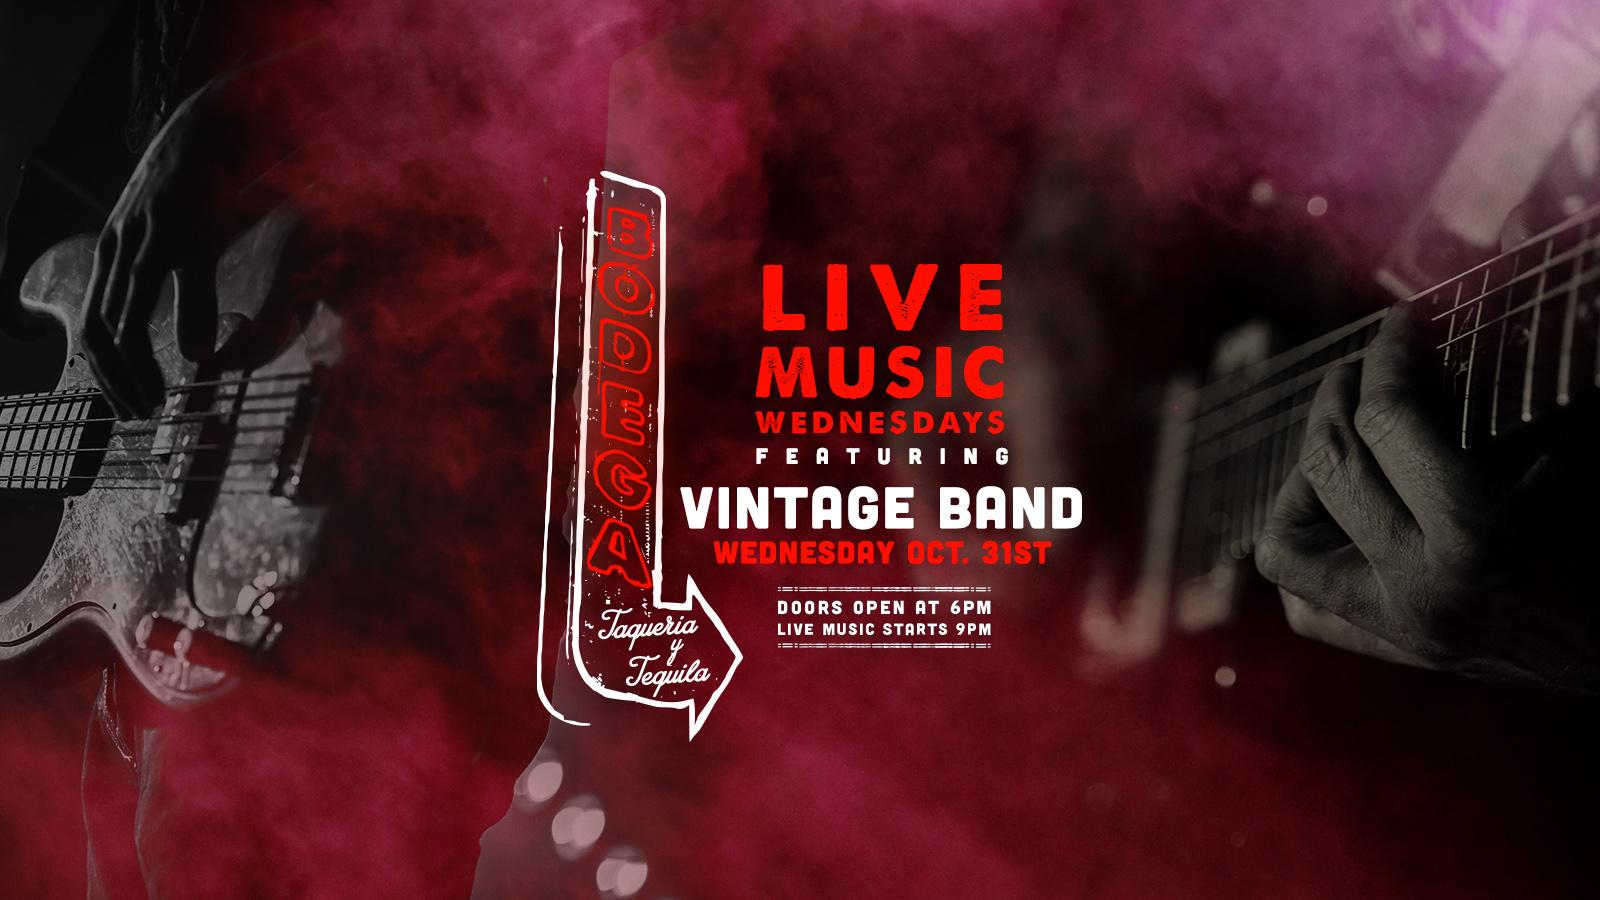 Live Music by Vintage Band at Bodega Taqueria y Tequila